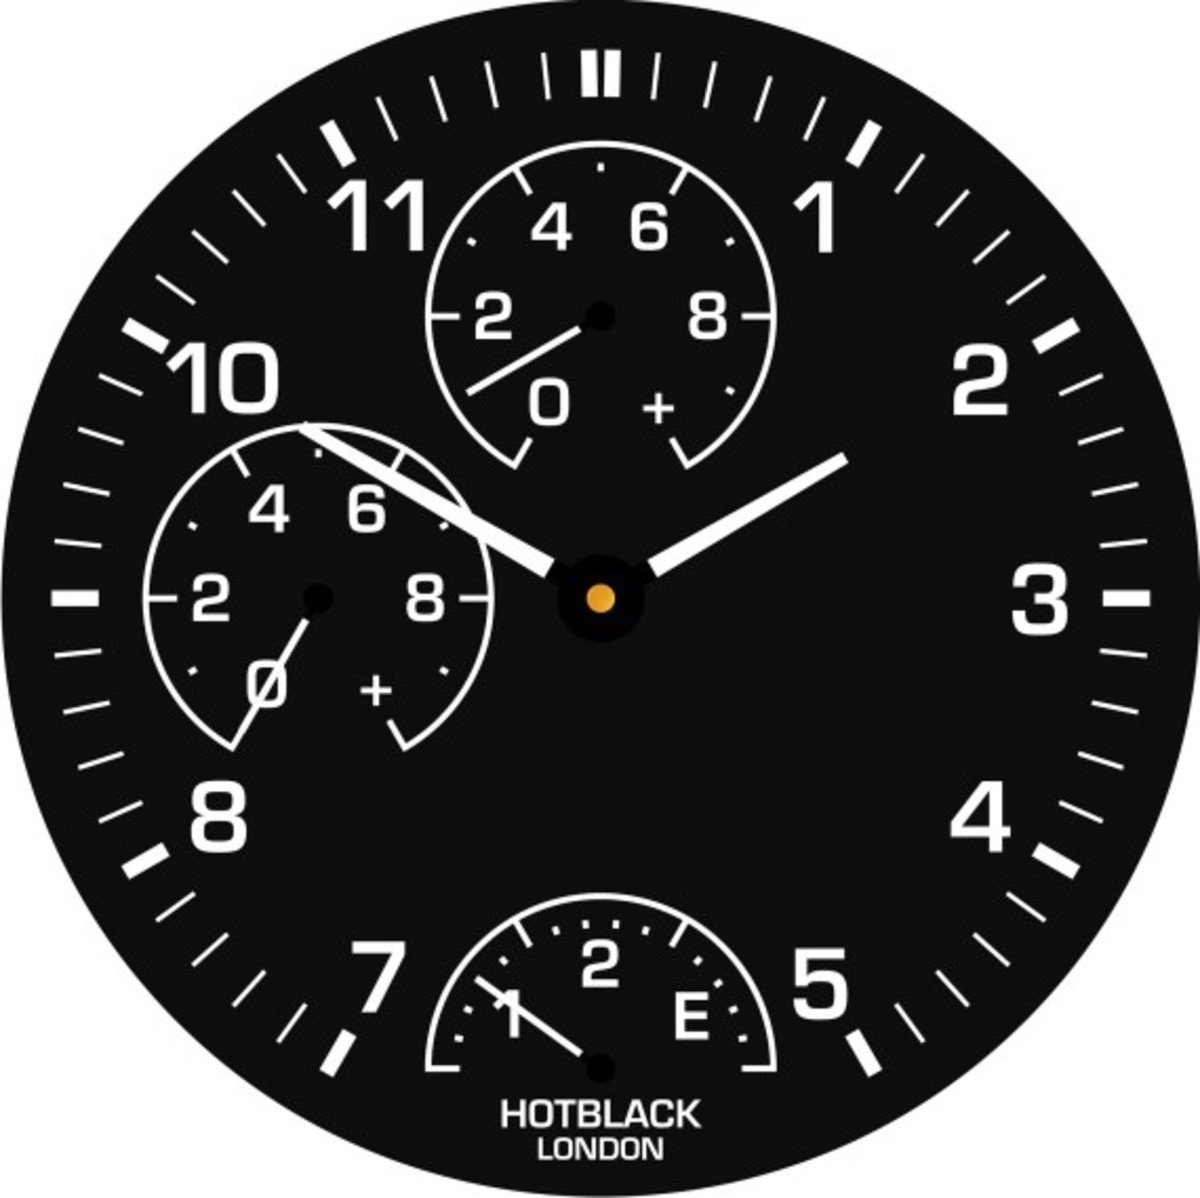 HotBlack Smartwatch - Analog Watch With Live Soccer Match Scores - 3